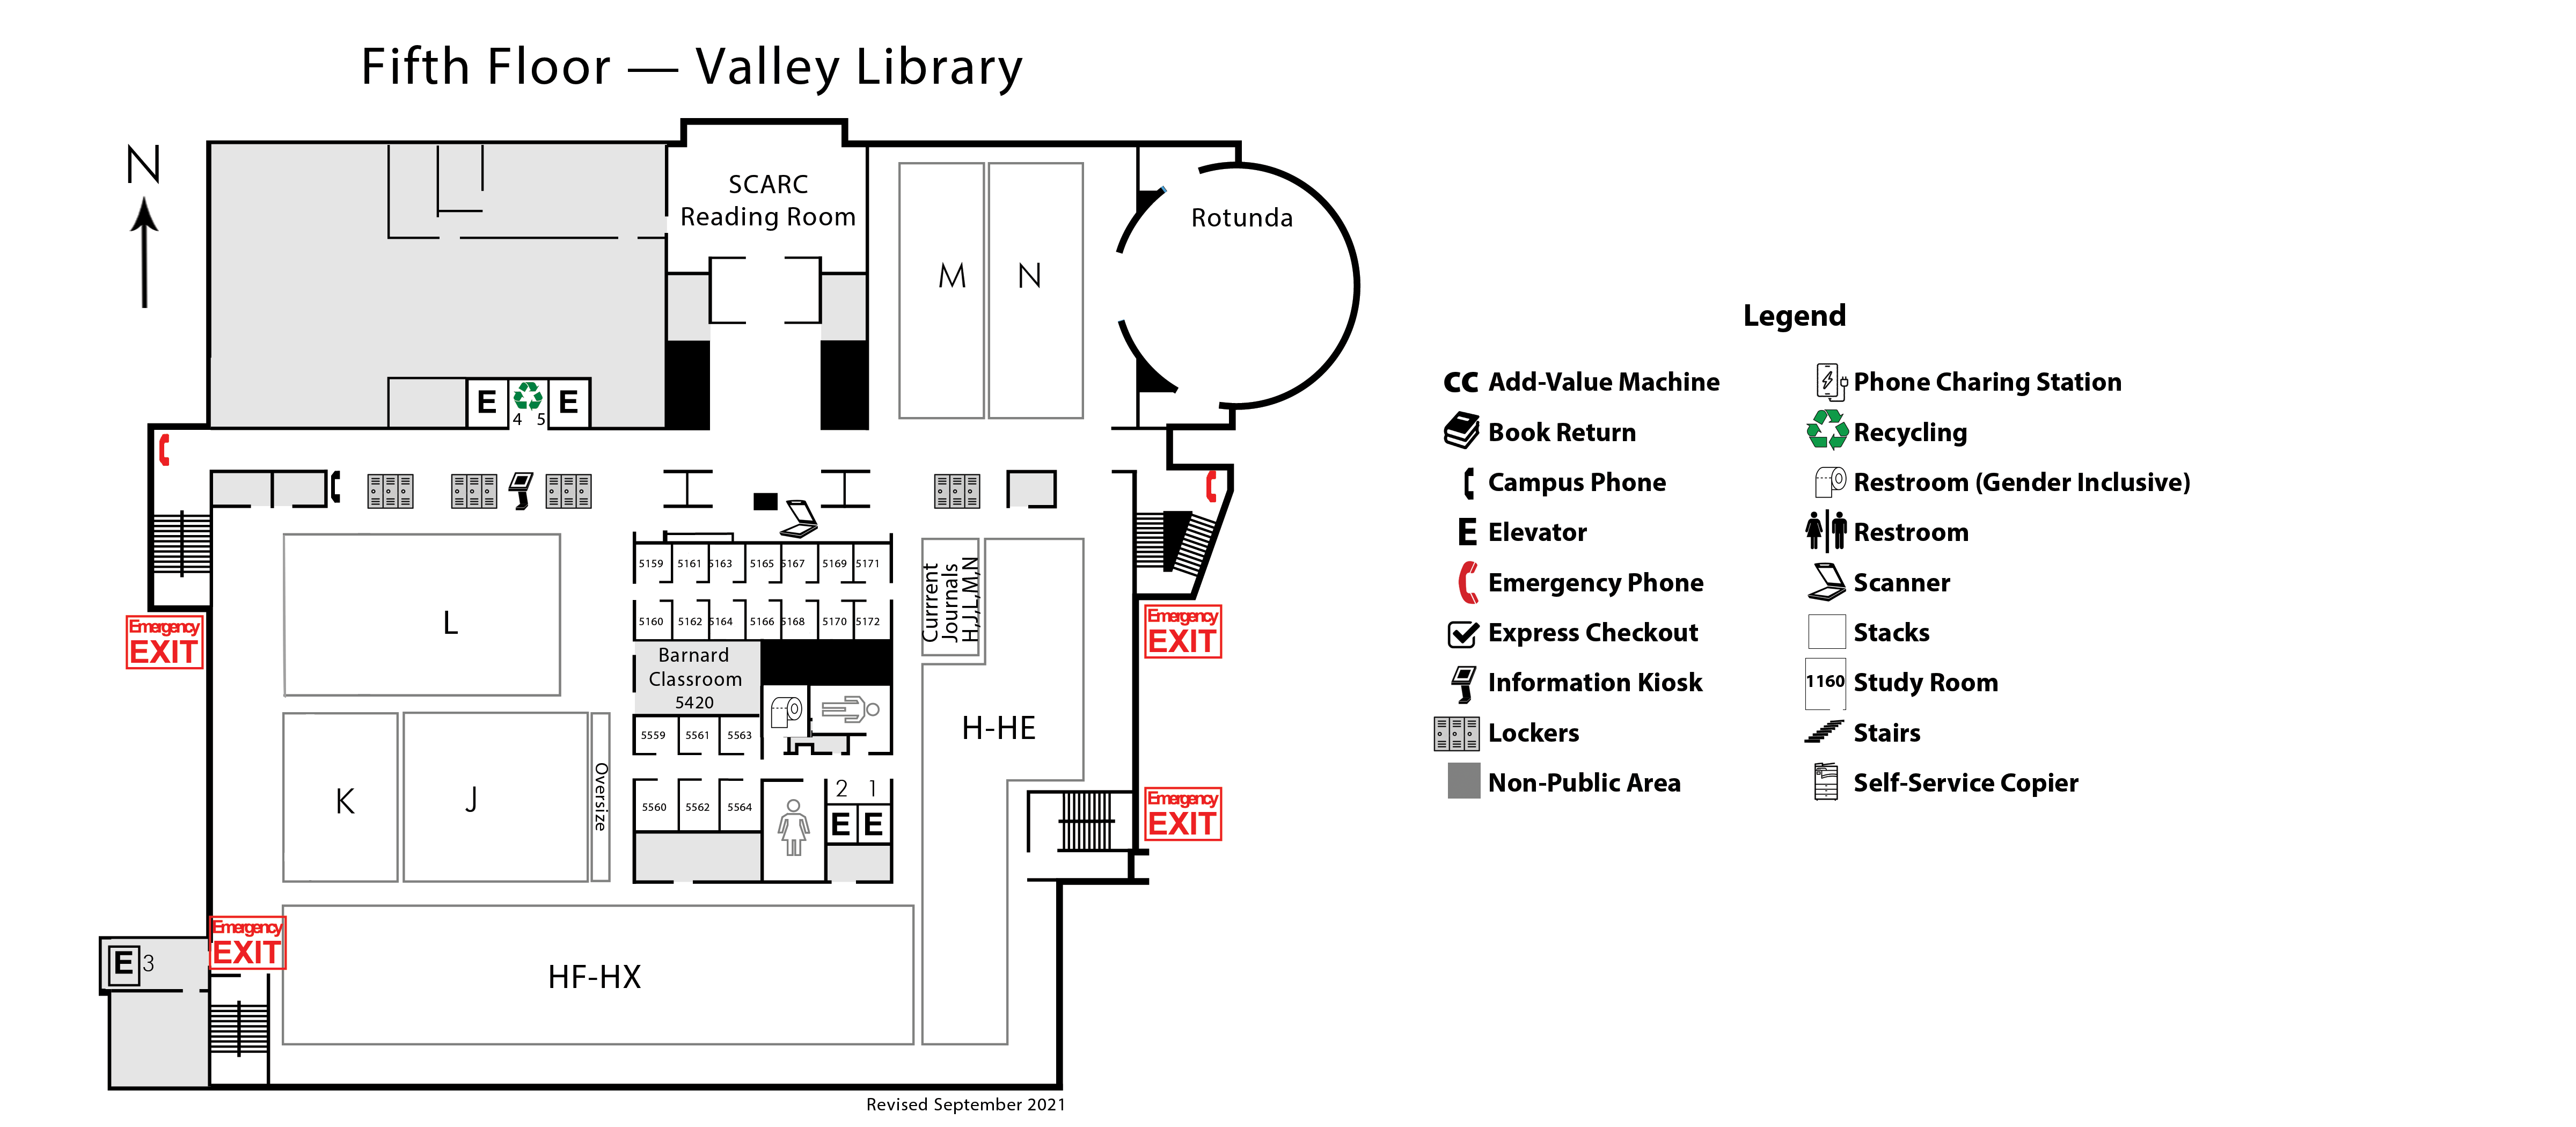 Fifth Floor Valley Library Map